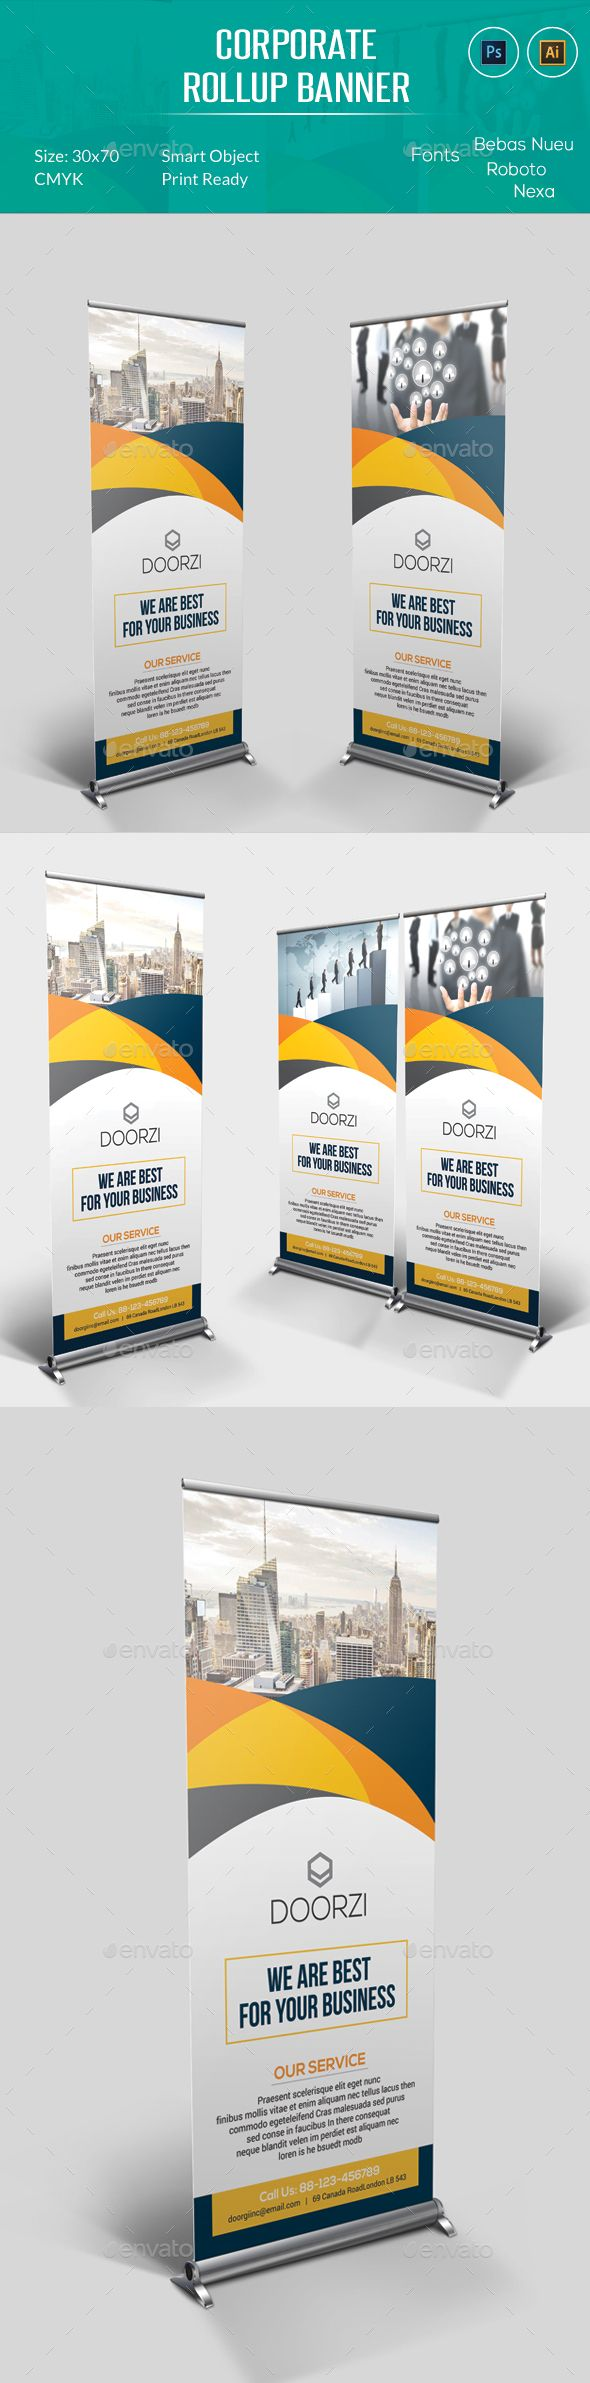 banner layout ideas selo l ink co